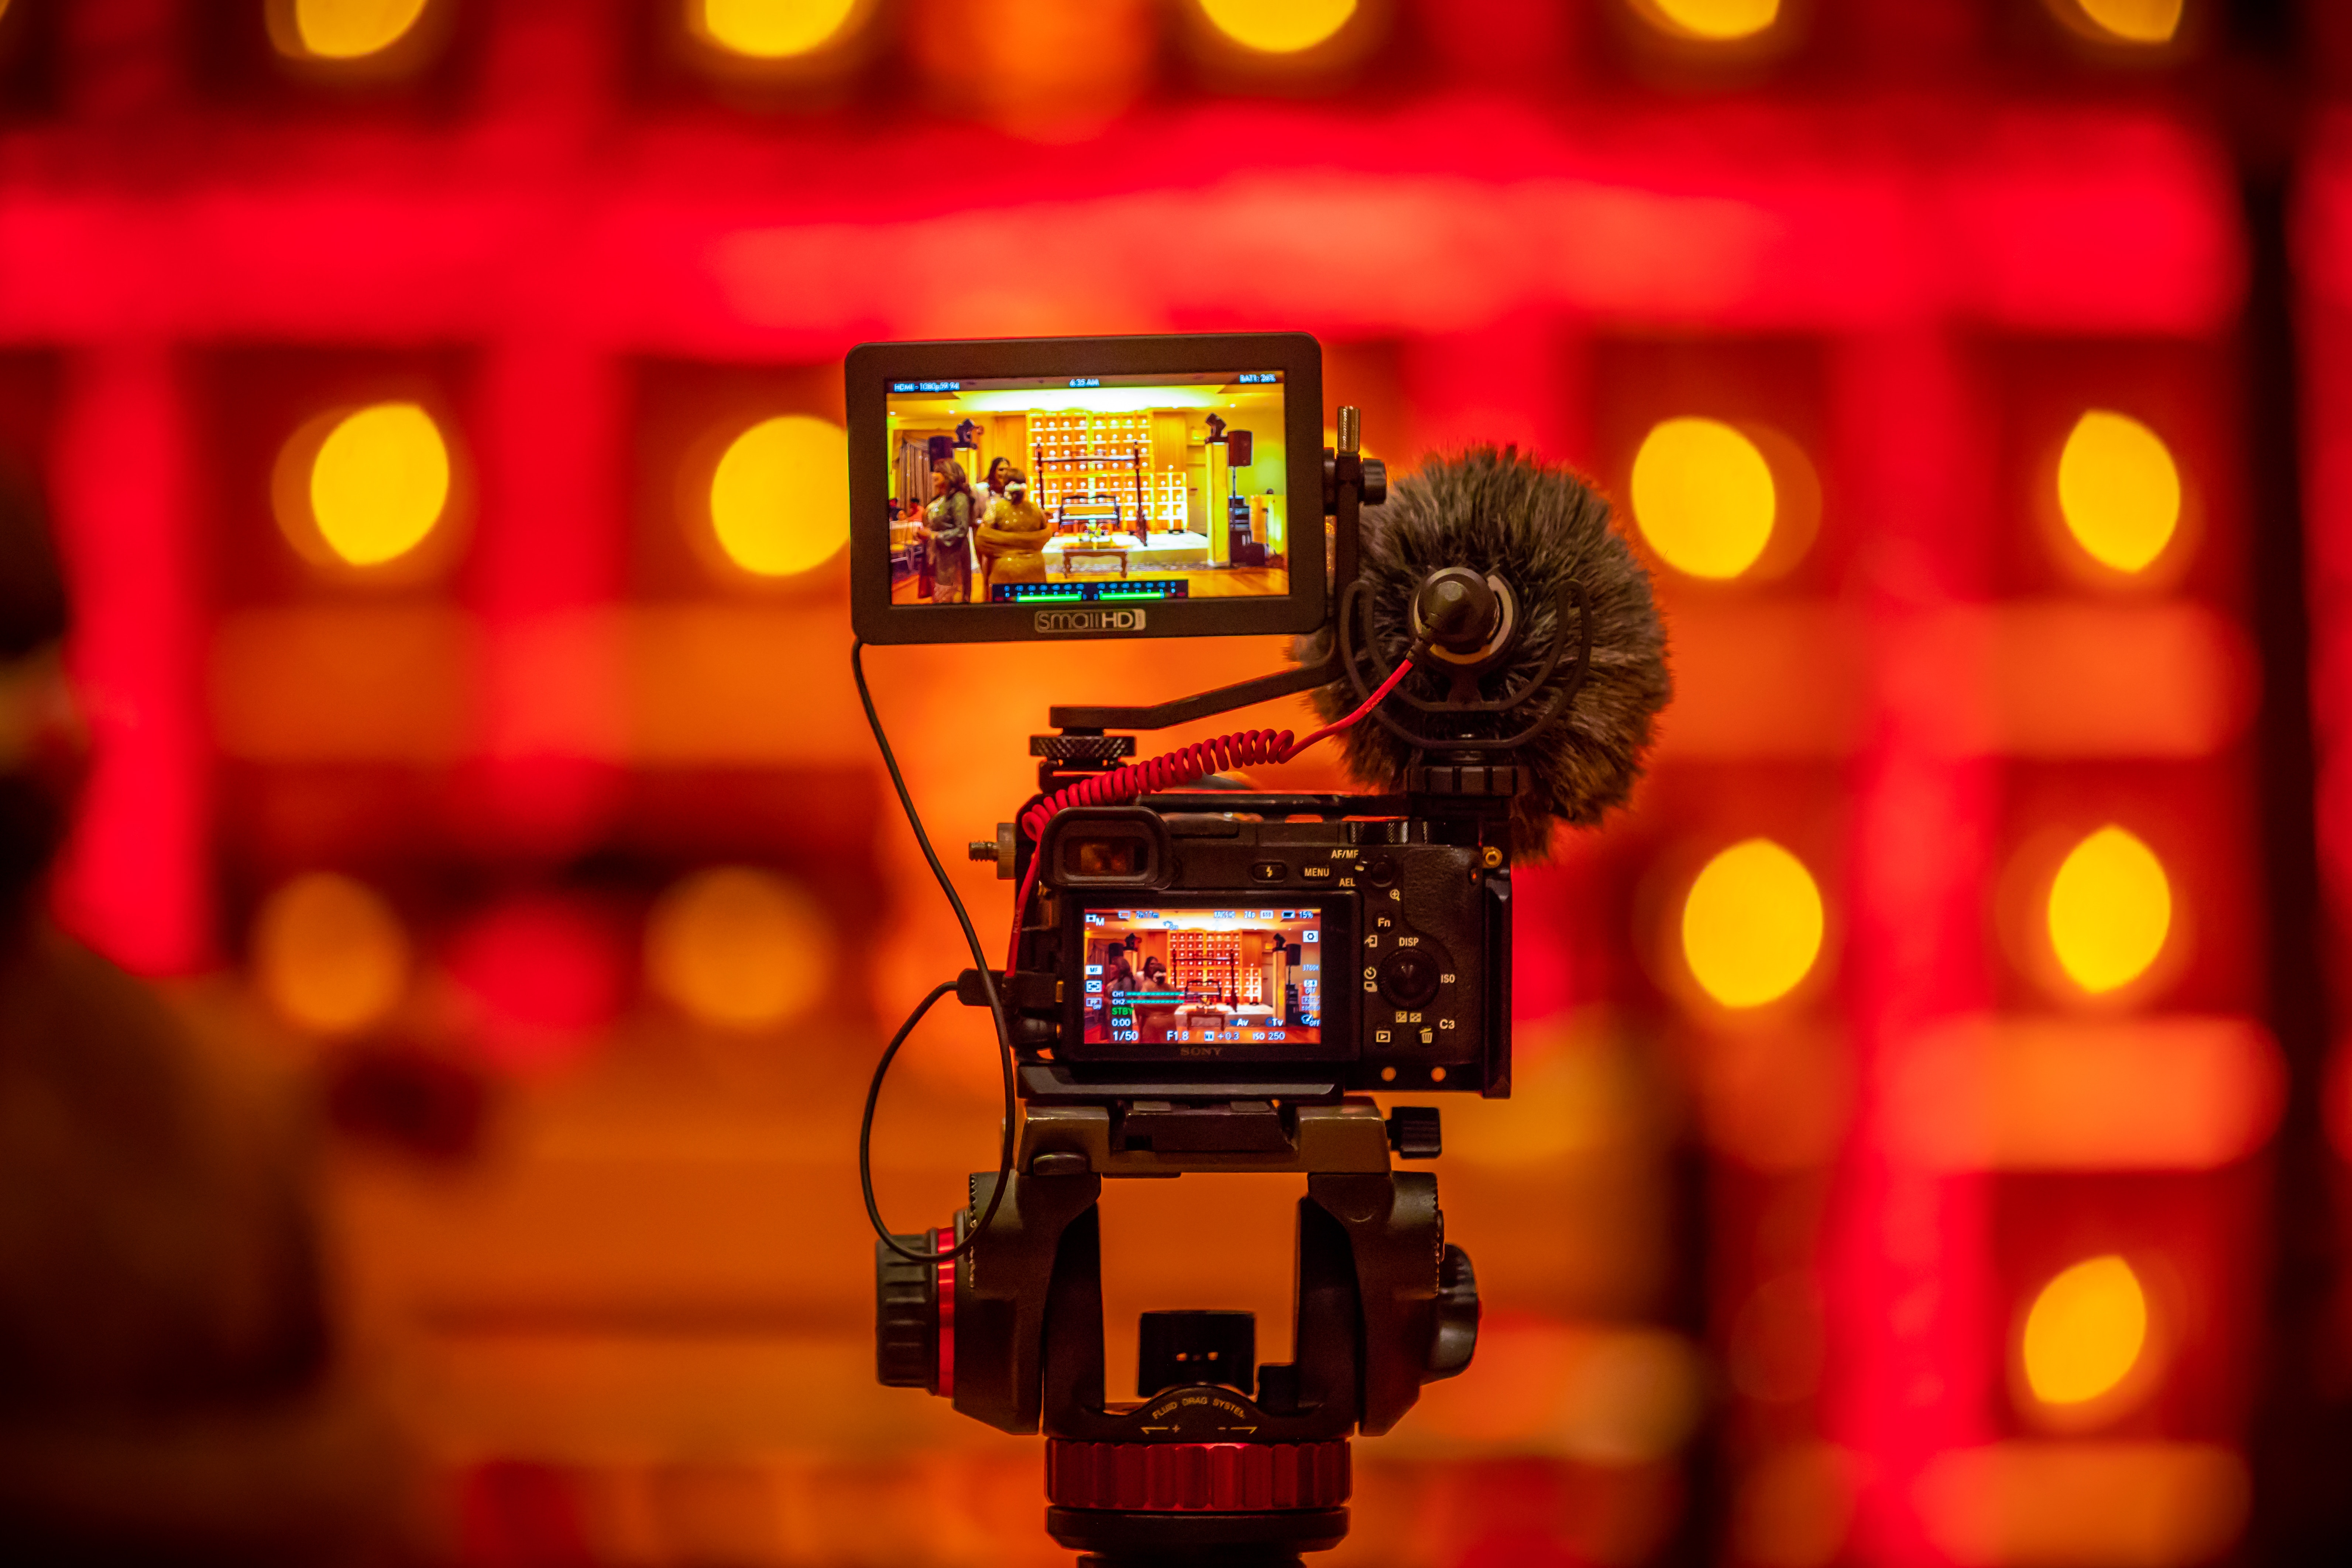 digital video camera set up with red lights in the background, capturing digital video for marketing content